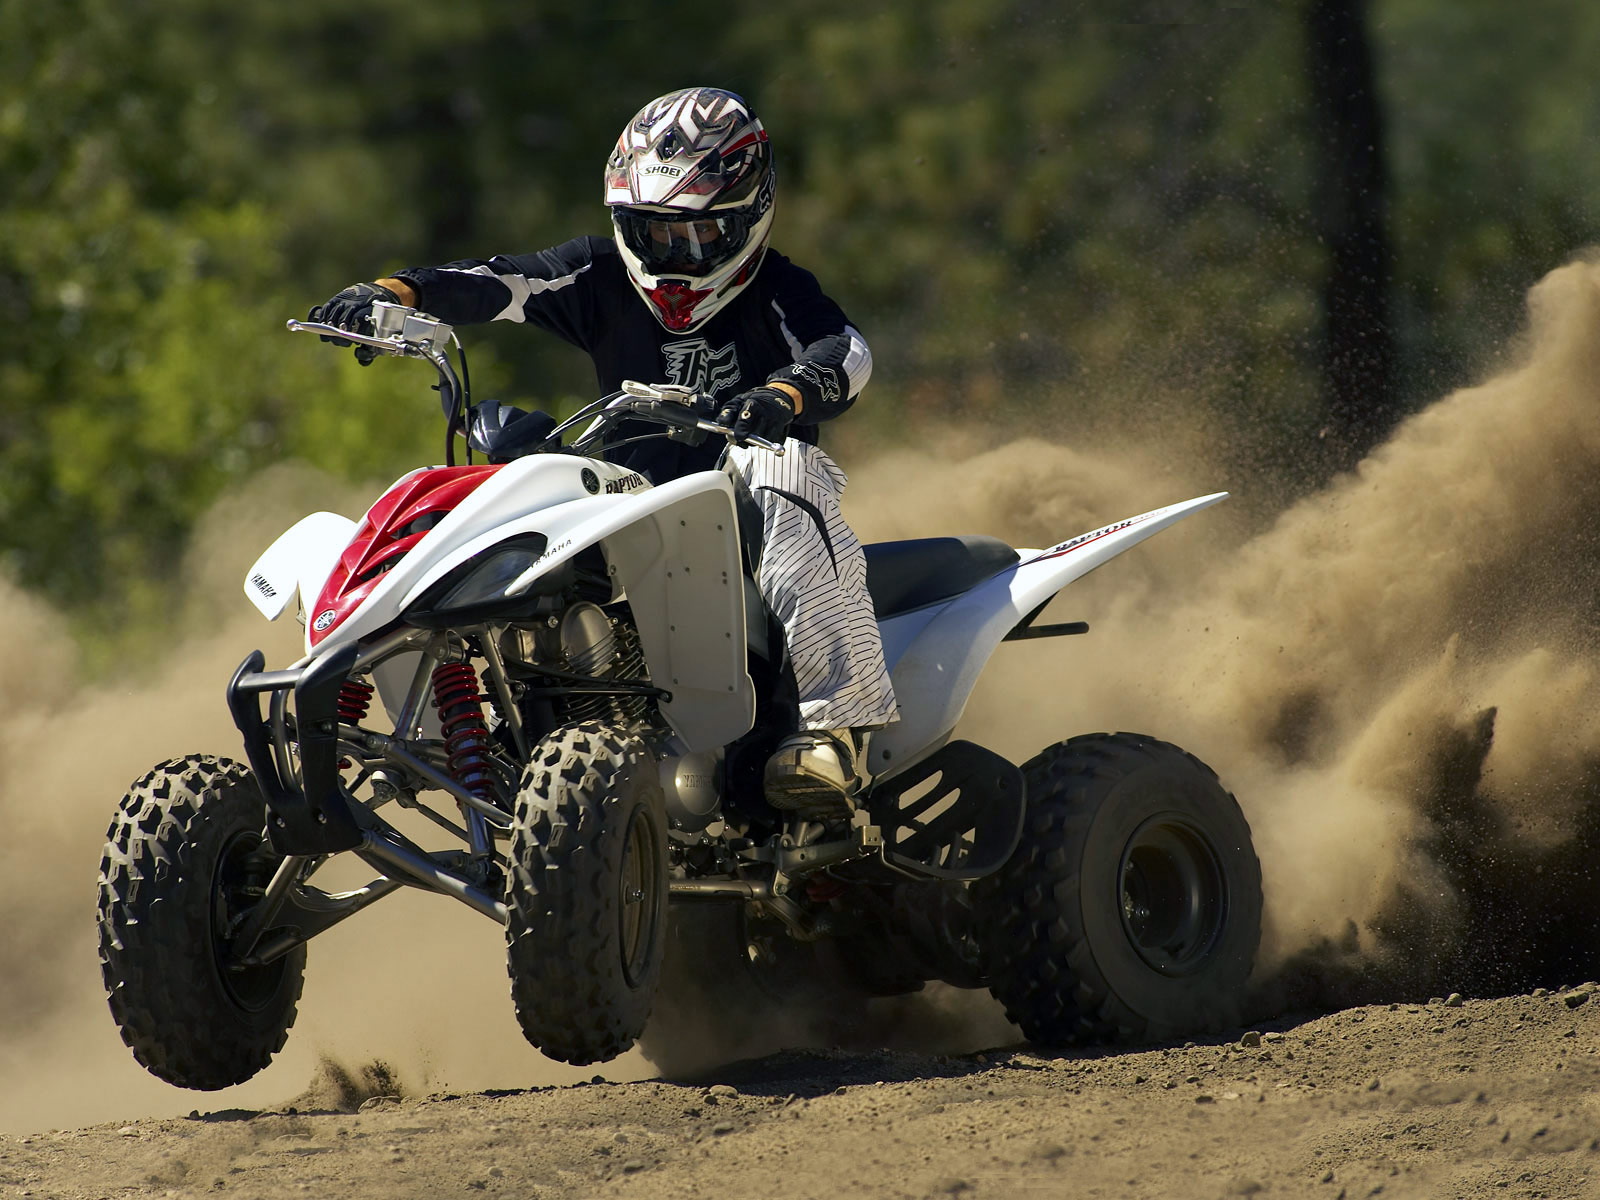 2010 YAMAHA Raptor 350 ATV Wallpapers 1600x1200